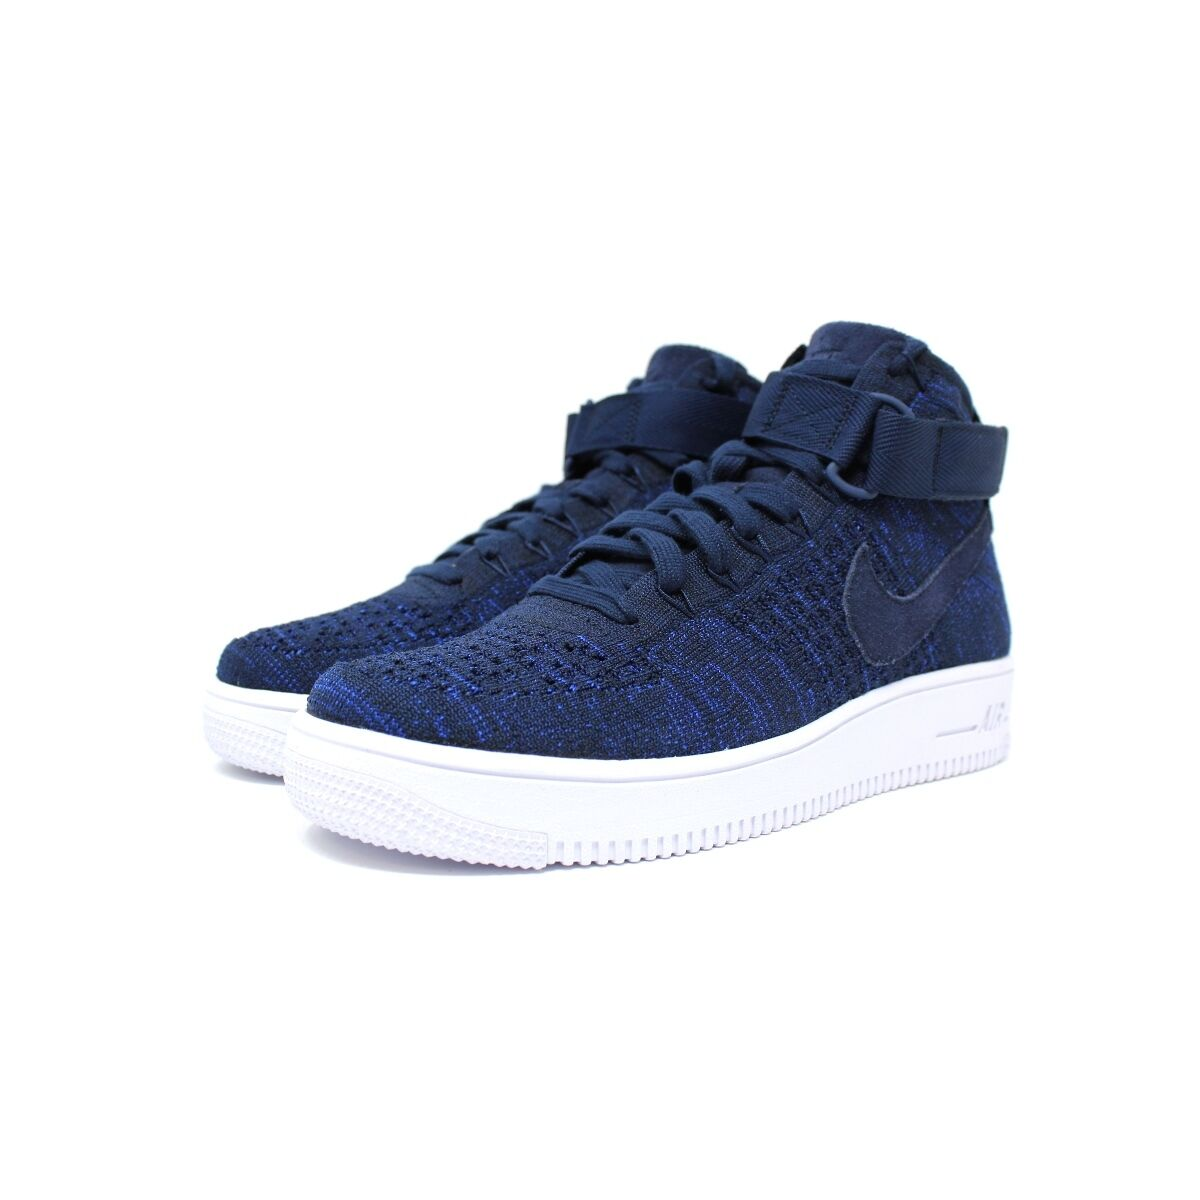 Nike AF1 Ultra Flyknit Mid Men Price reduction best-selling model of the brand